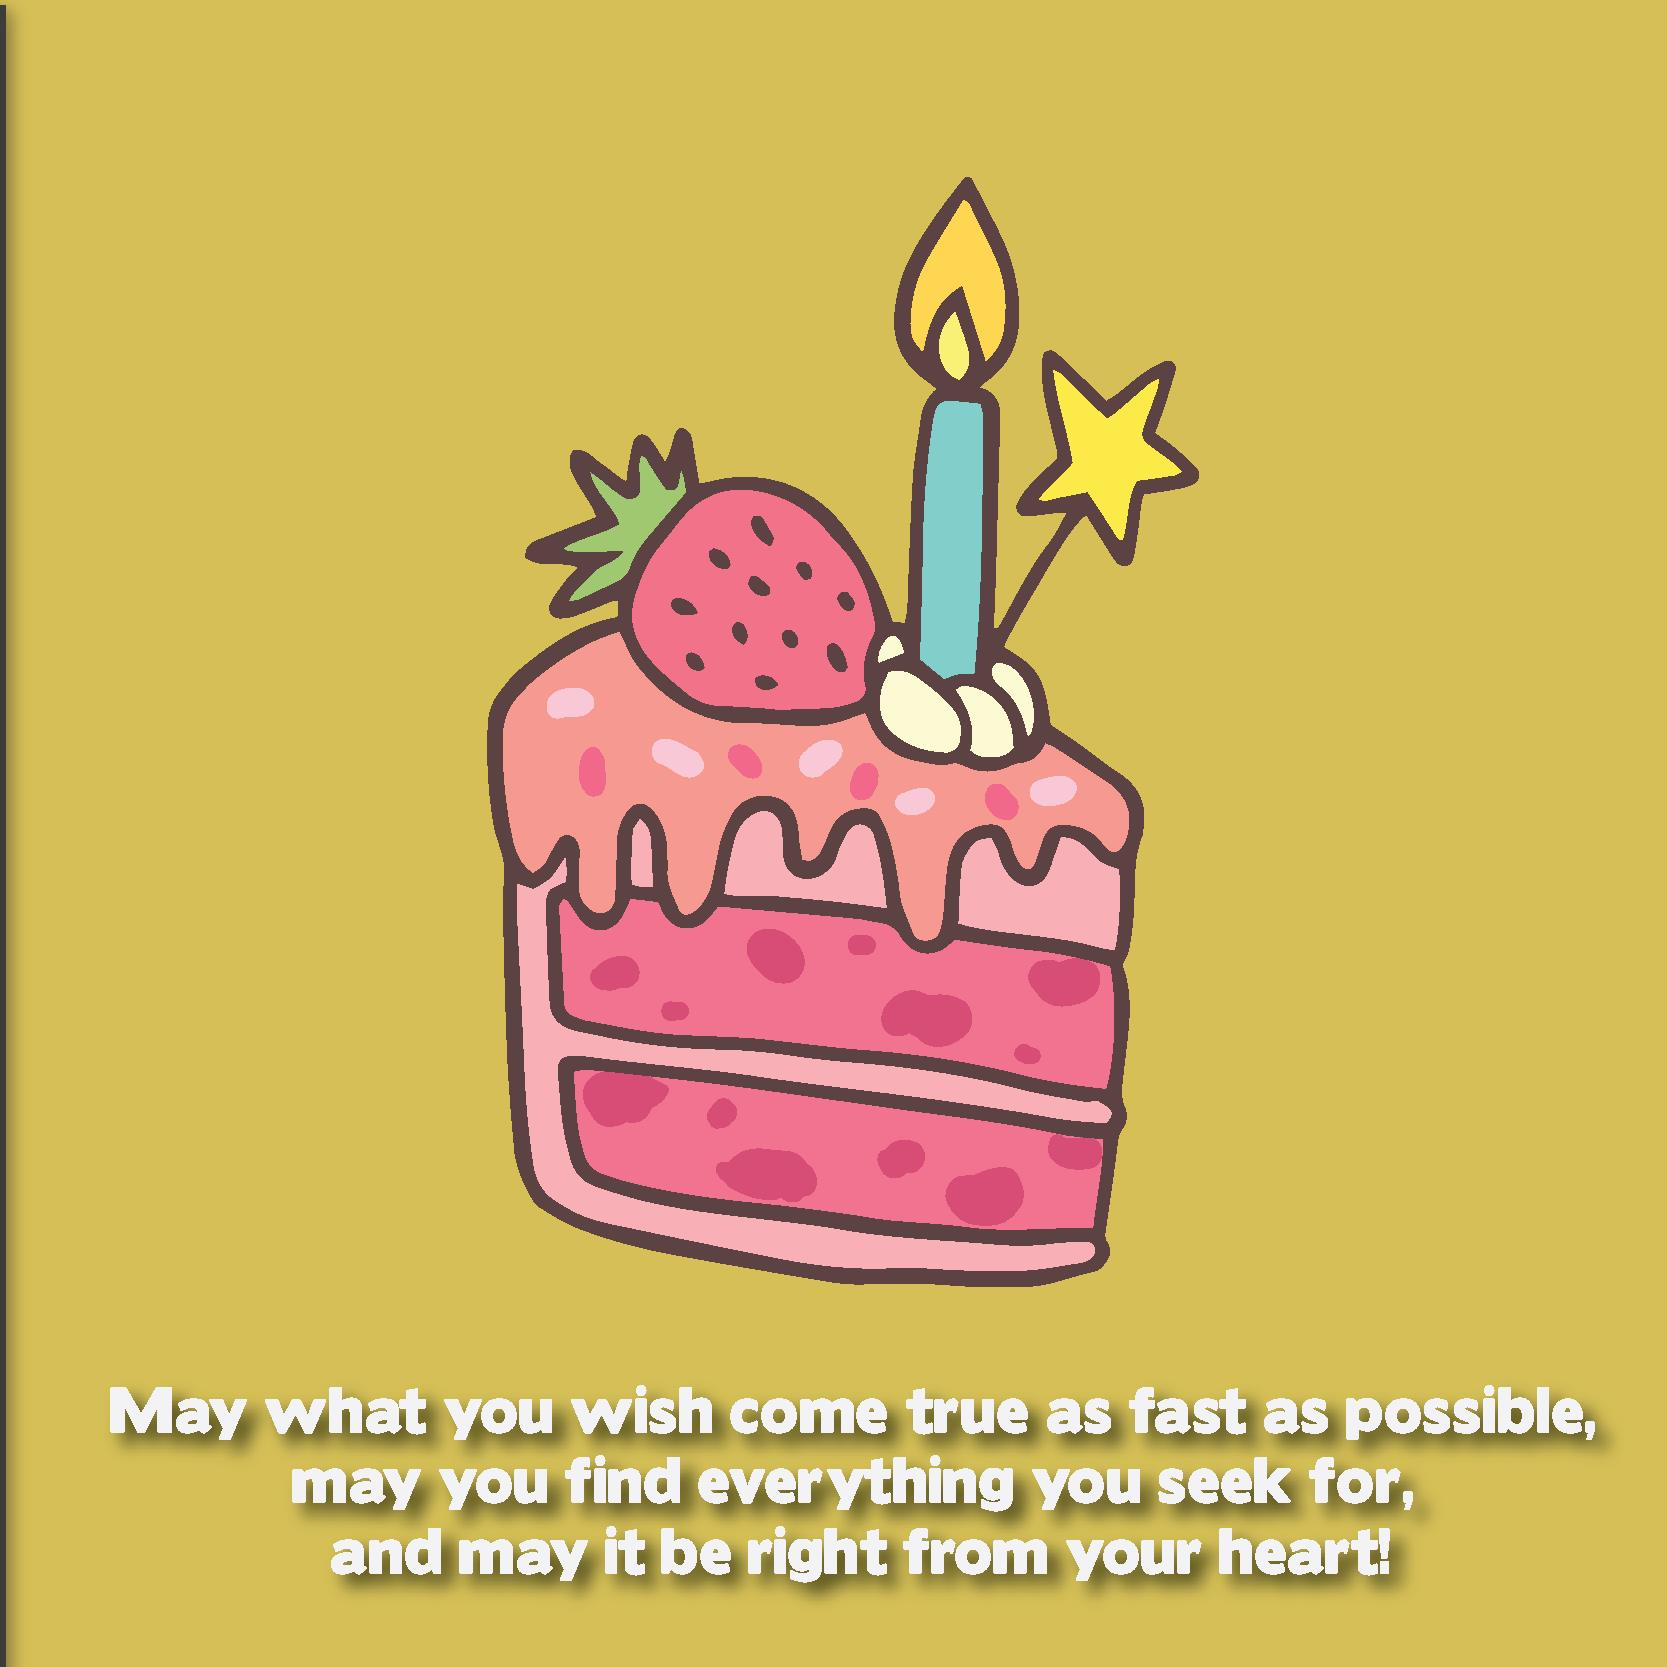 special-birthday-wishes-08